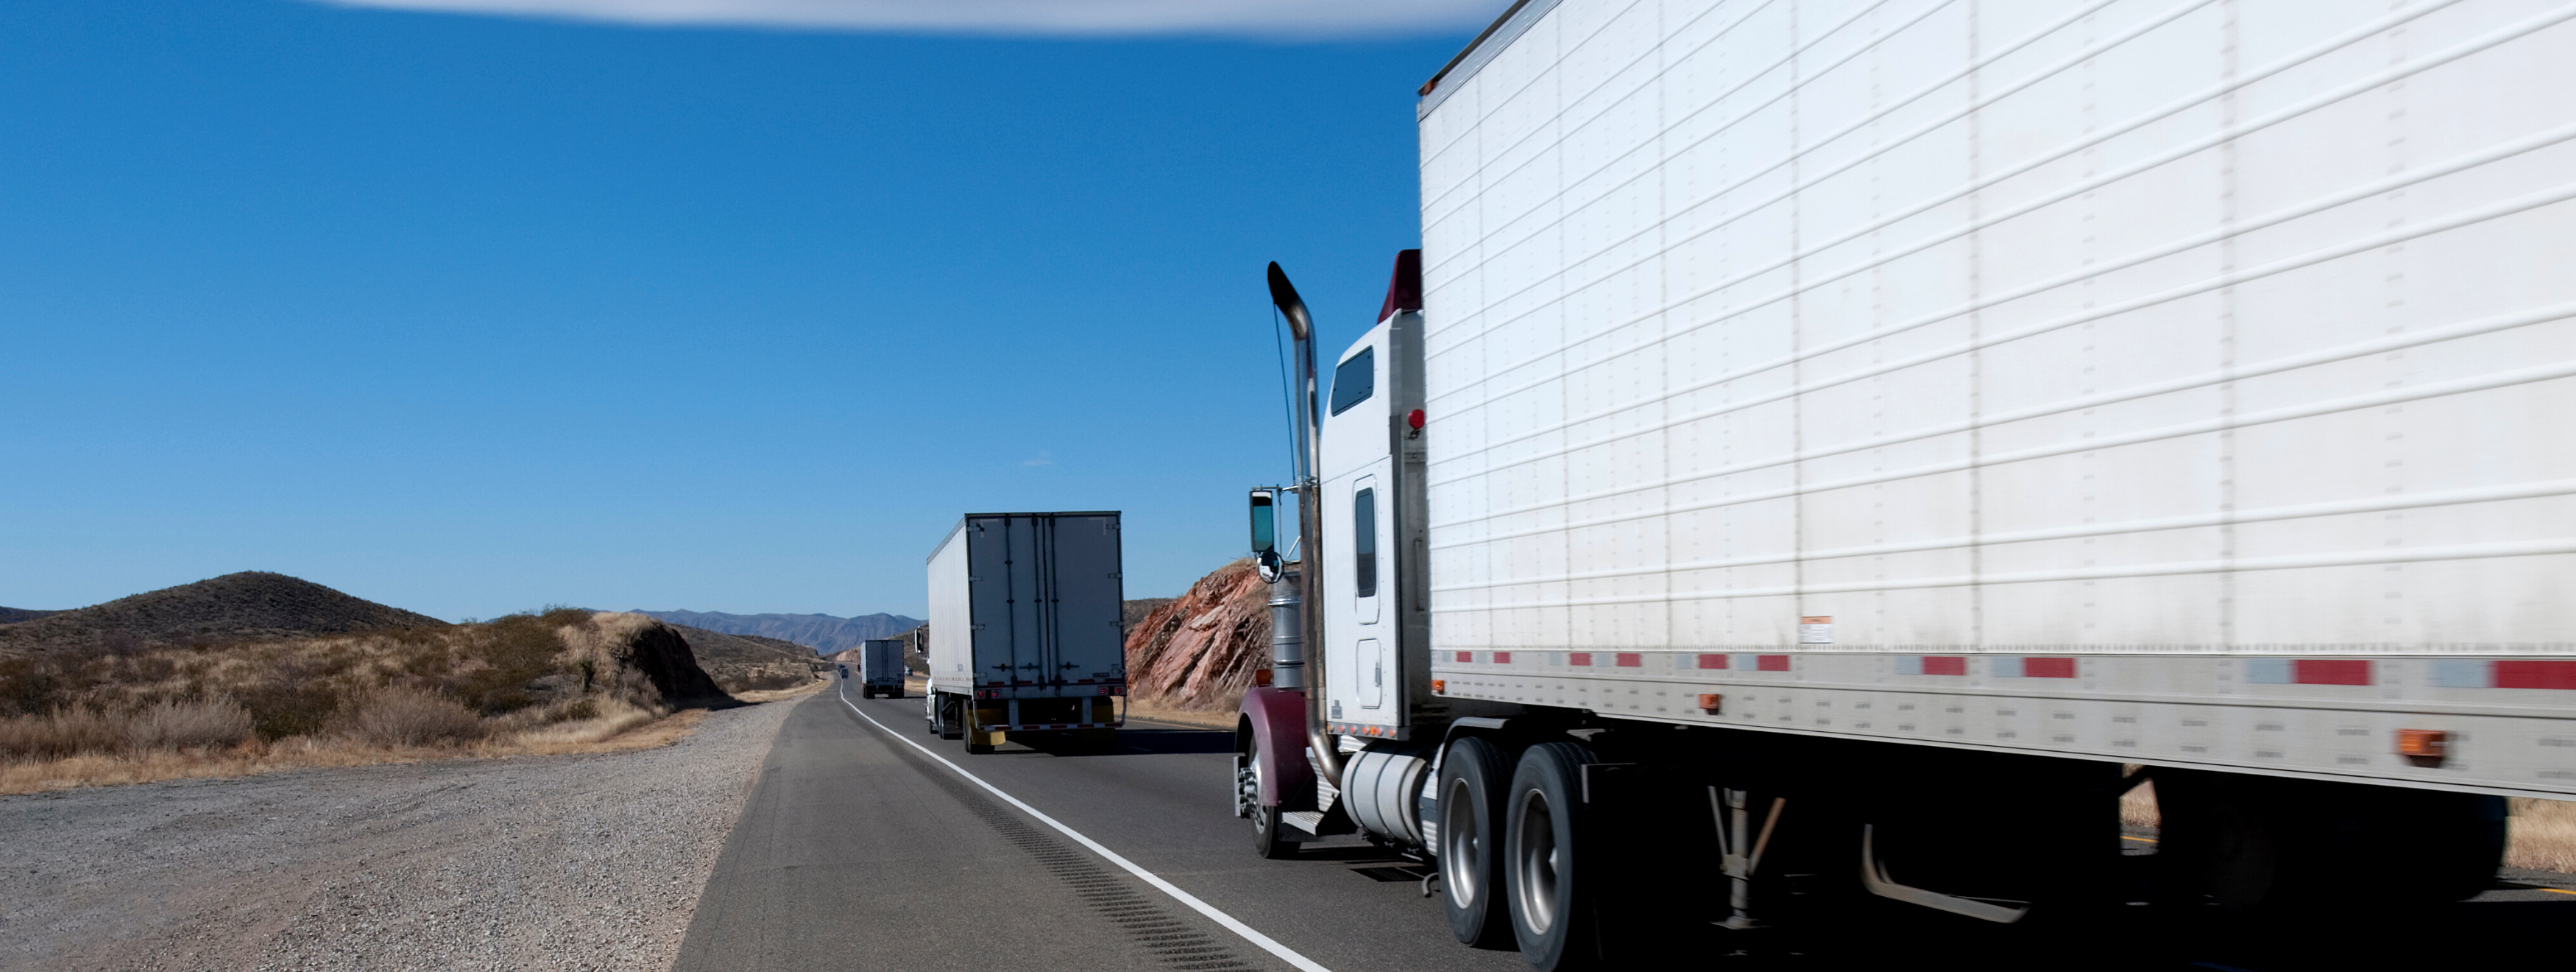 National Motor Freight Class Changes Effective April 10, 2021